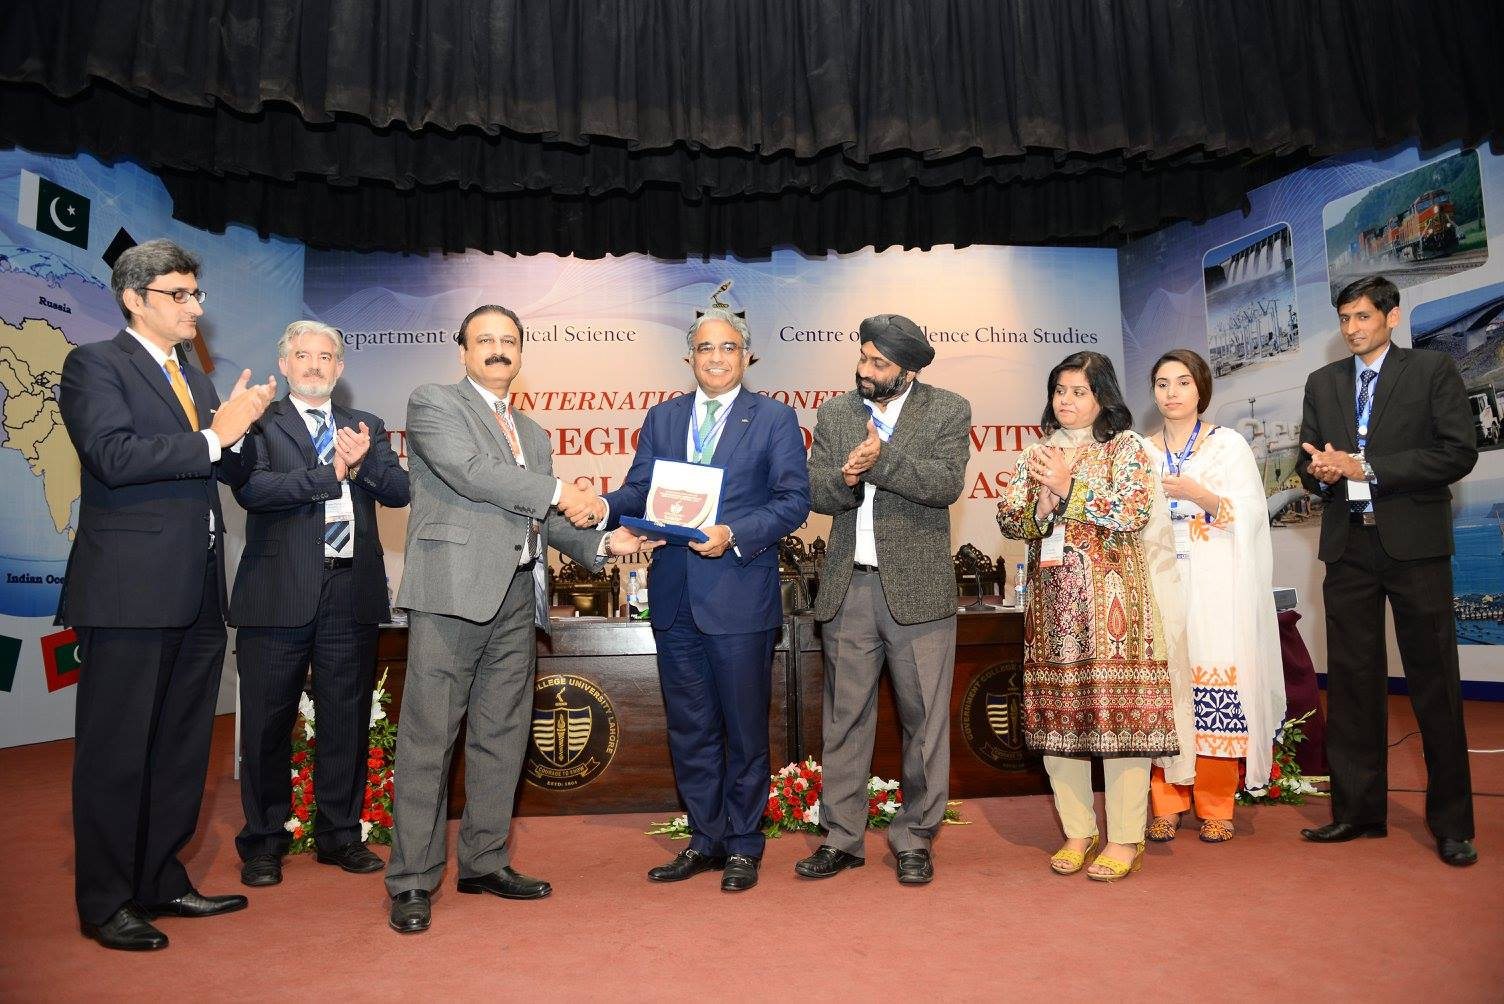 Prof. Dr. Khalid Manzoor Butt presenting souvenir to Speakers